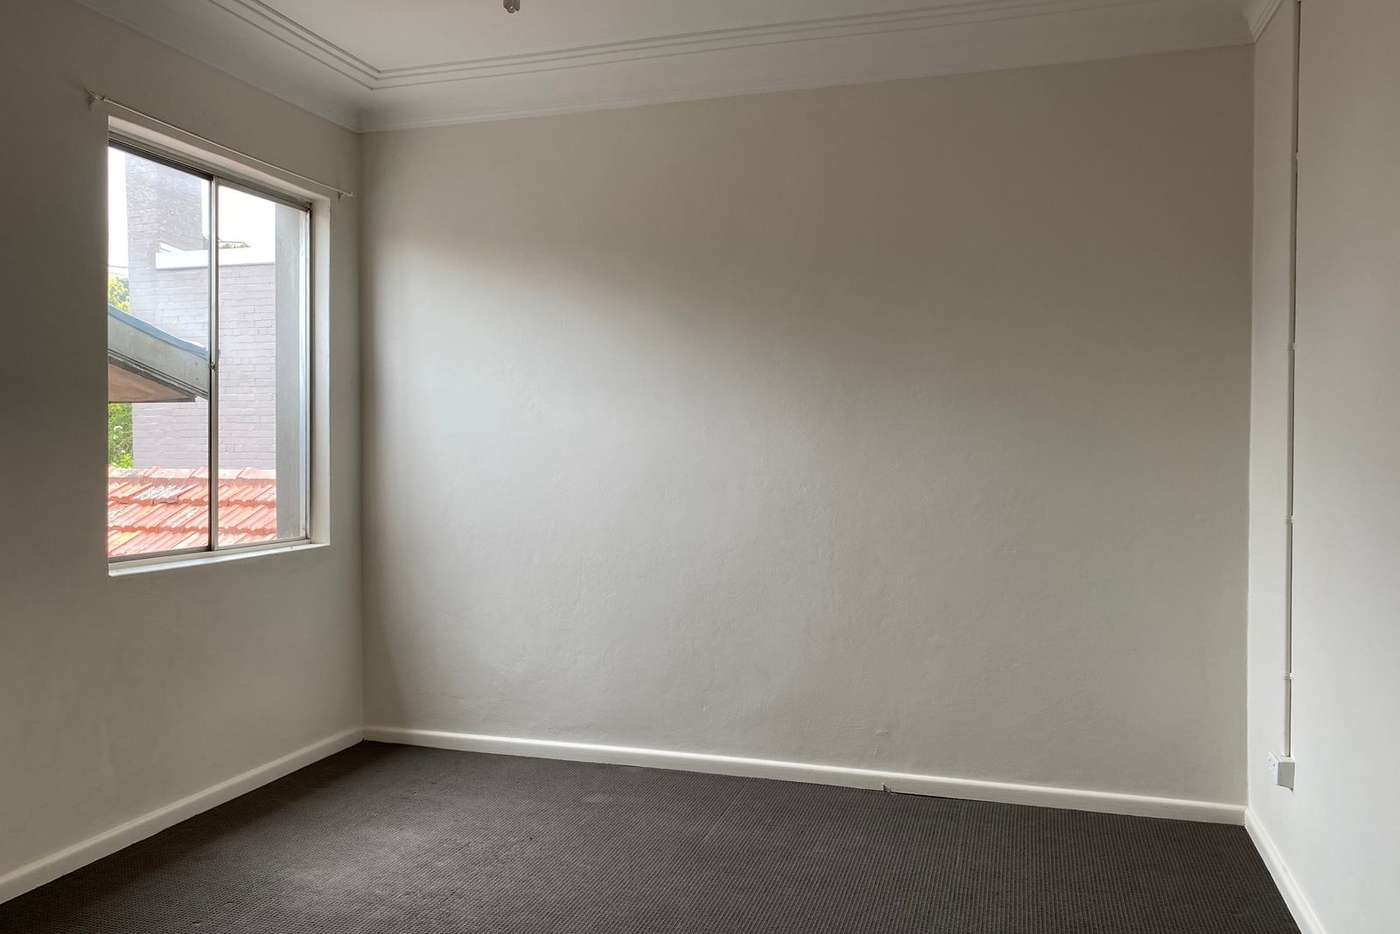 Main view of Homely studio listing, 4/15 Brown Street, Newtown NSW 2042